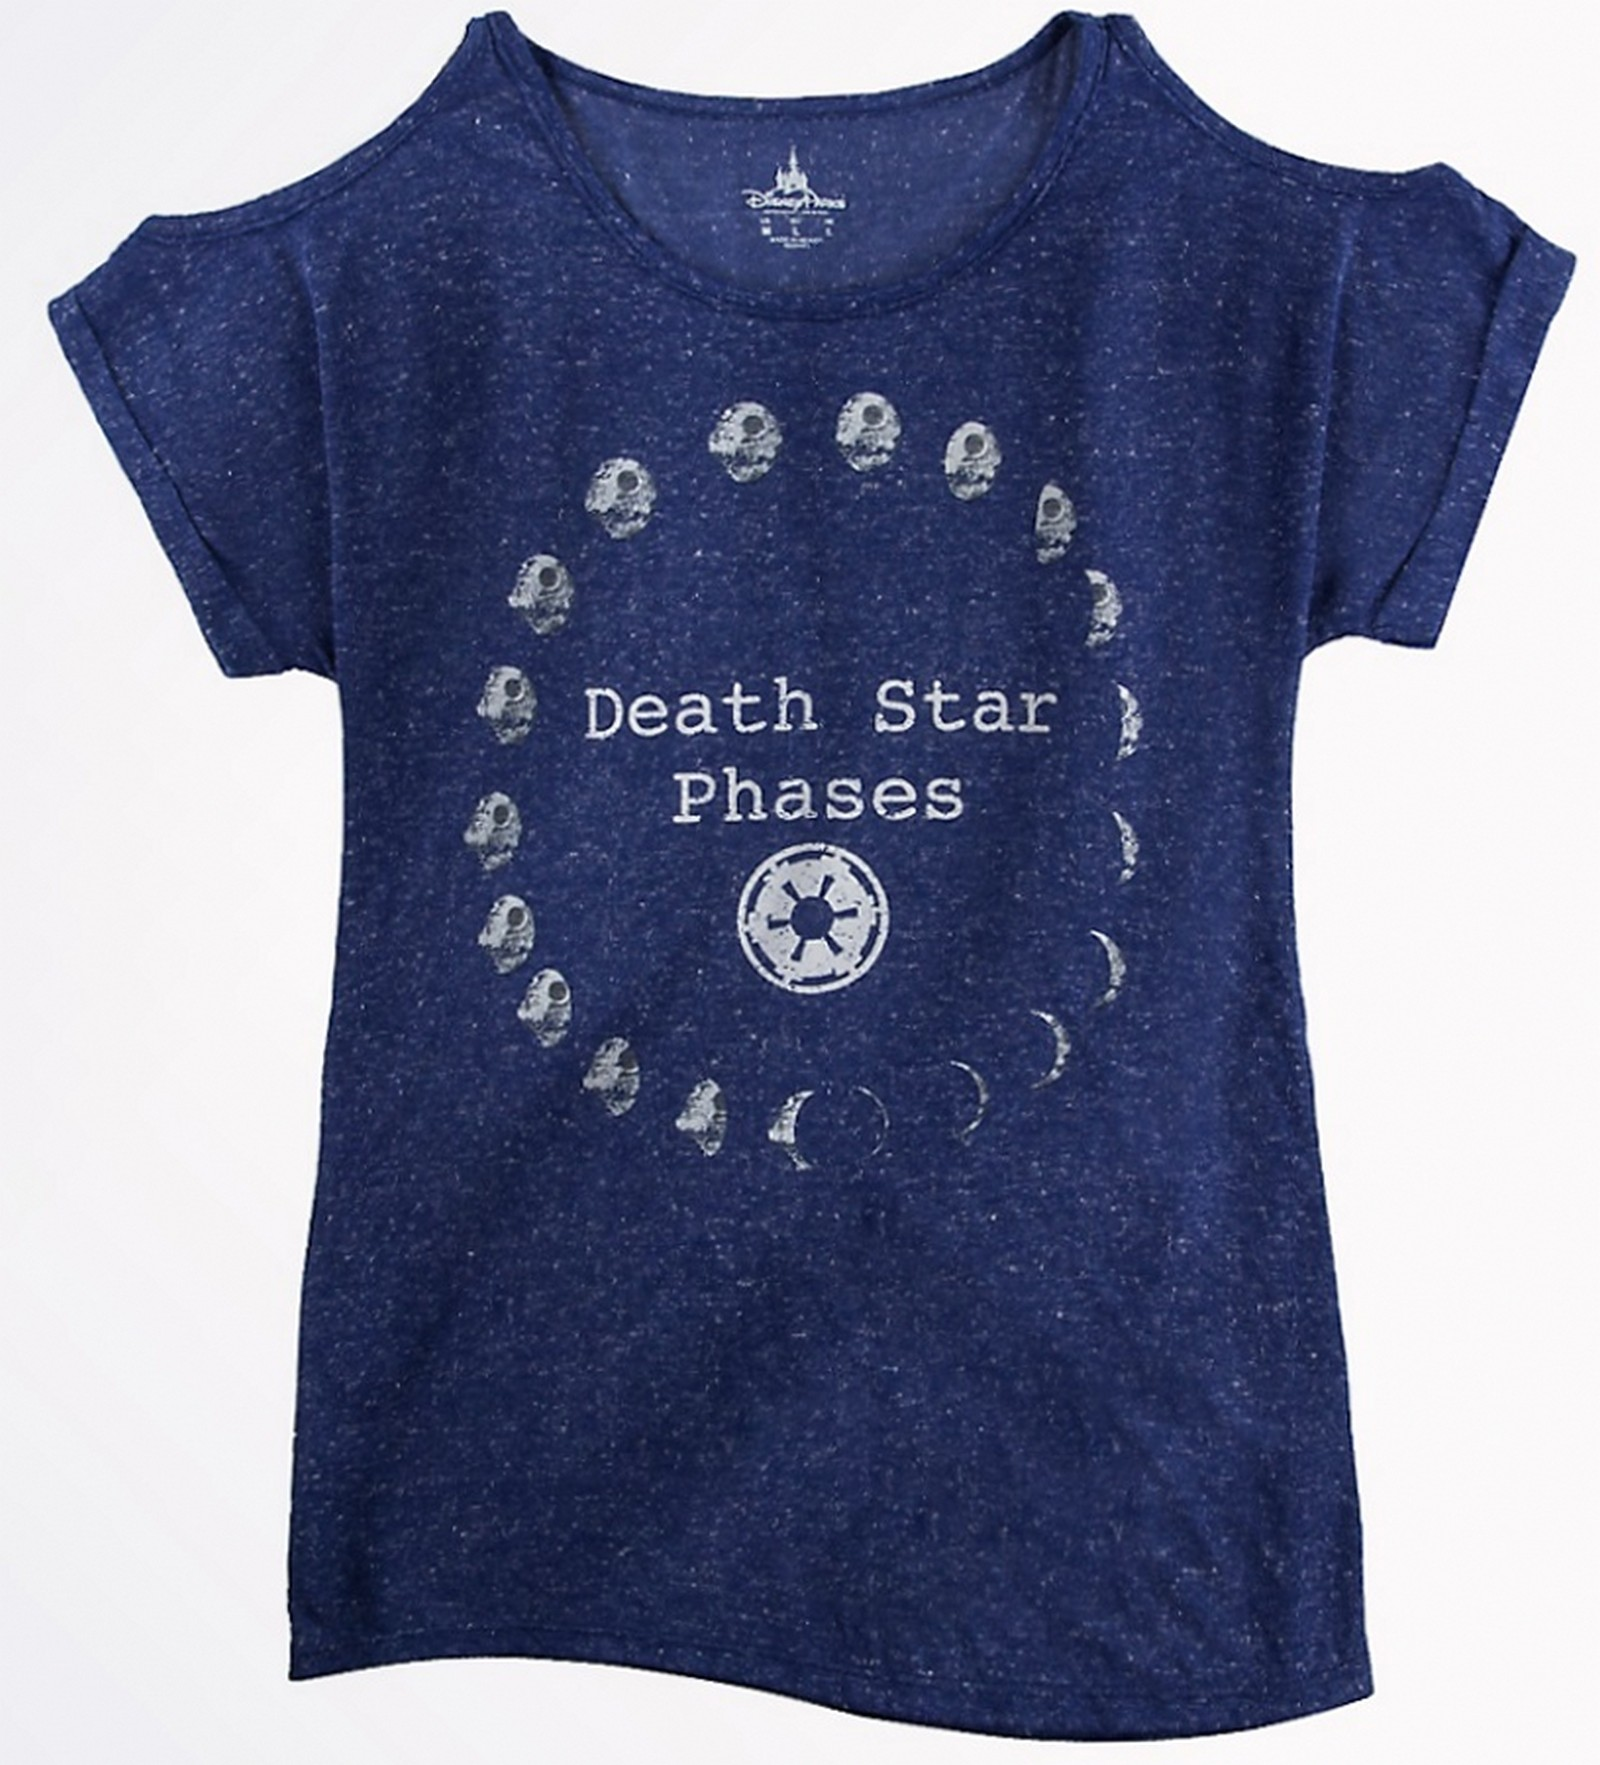 Death Star Phases Ladies Top (T-Shirt, Tshirt, T shirt or Tee) - Disney's Star Wars © Dizdude.com